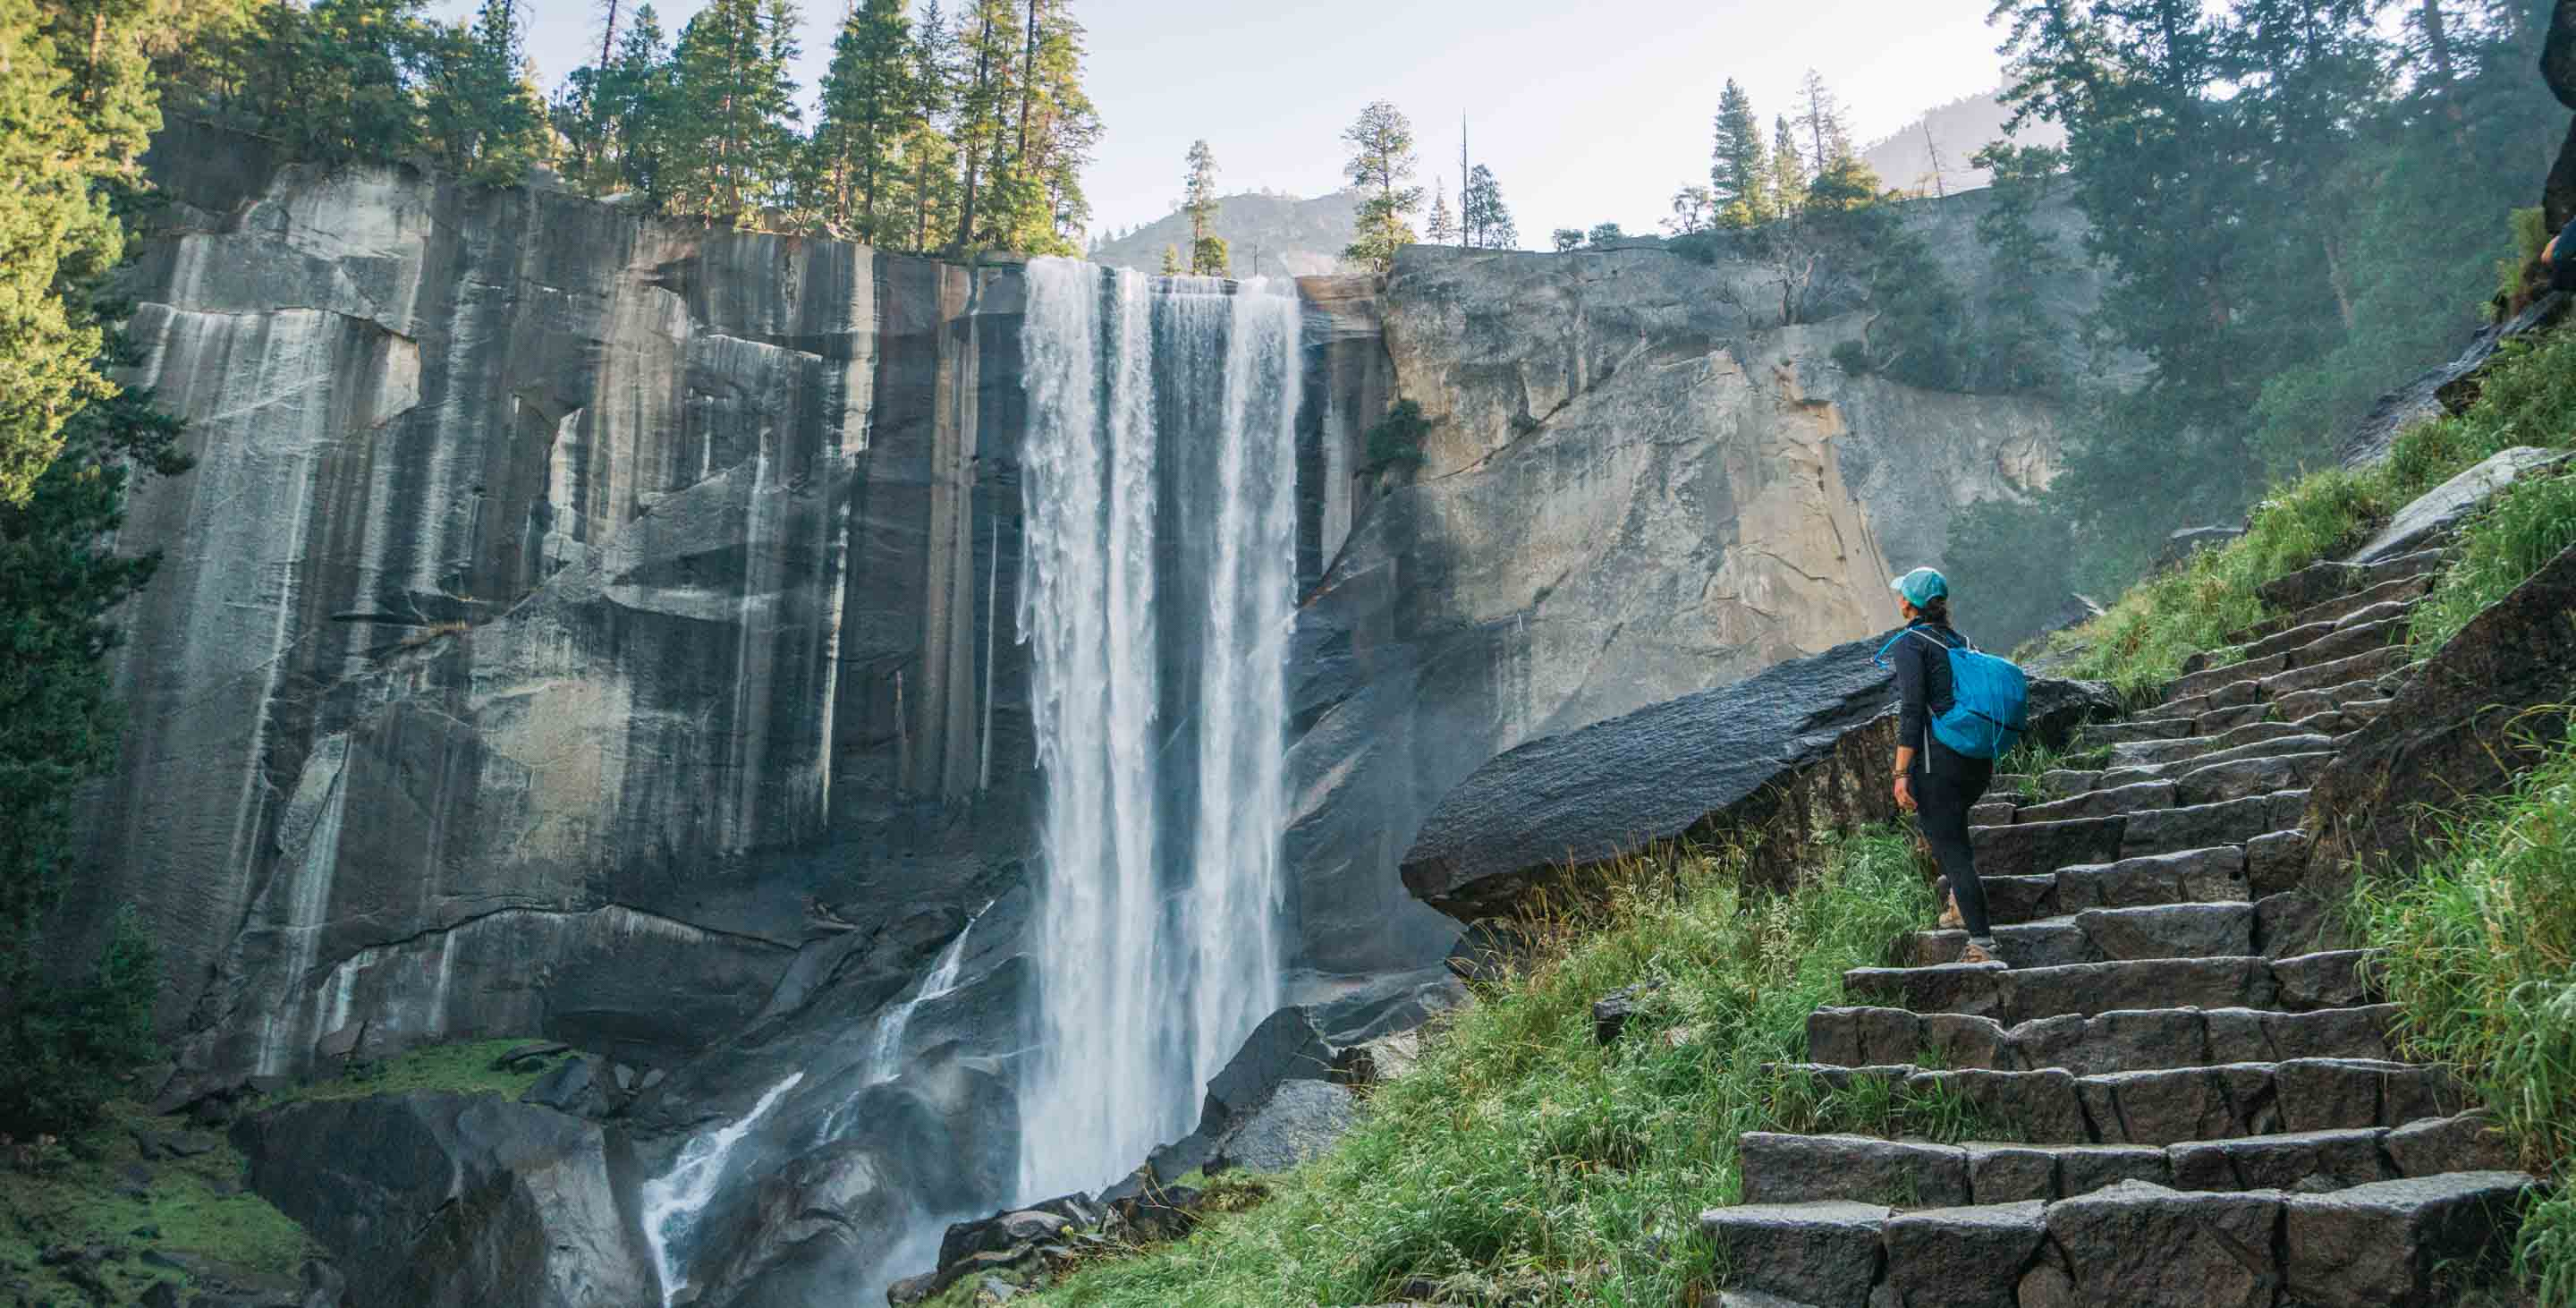 Hiker pauses on stone steps to view Yosemite waterfall.